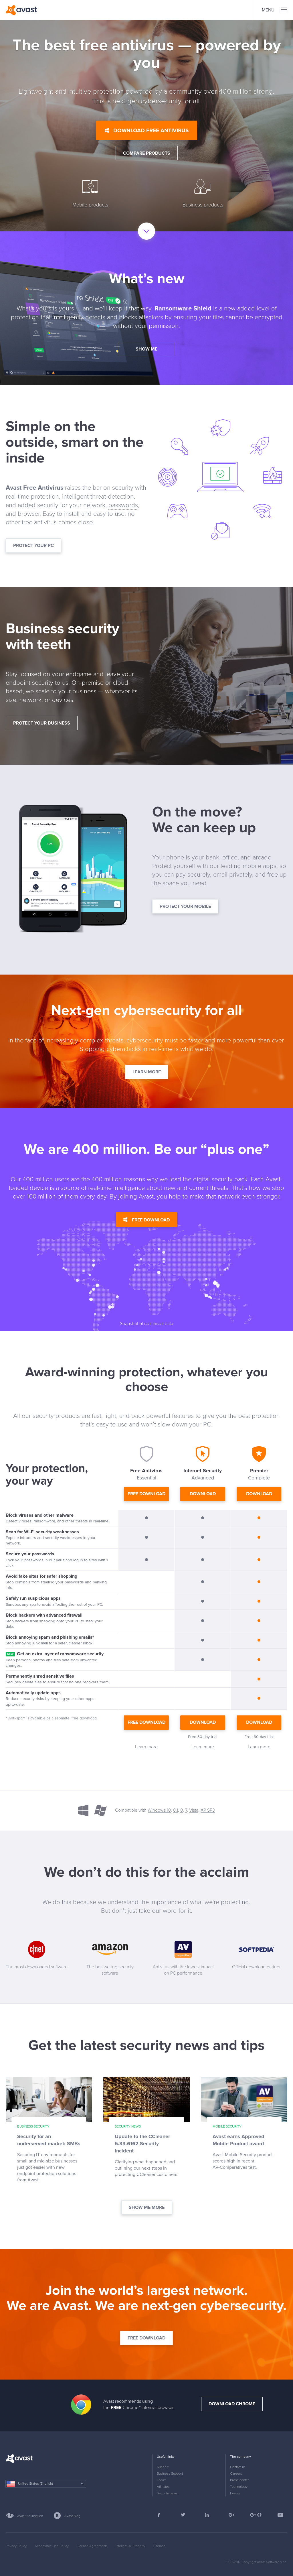 avast 2018 annual report